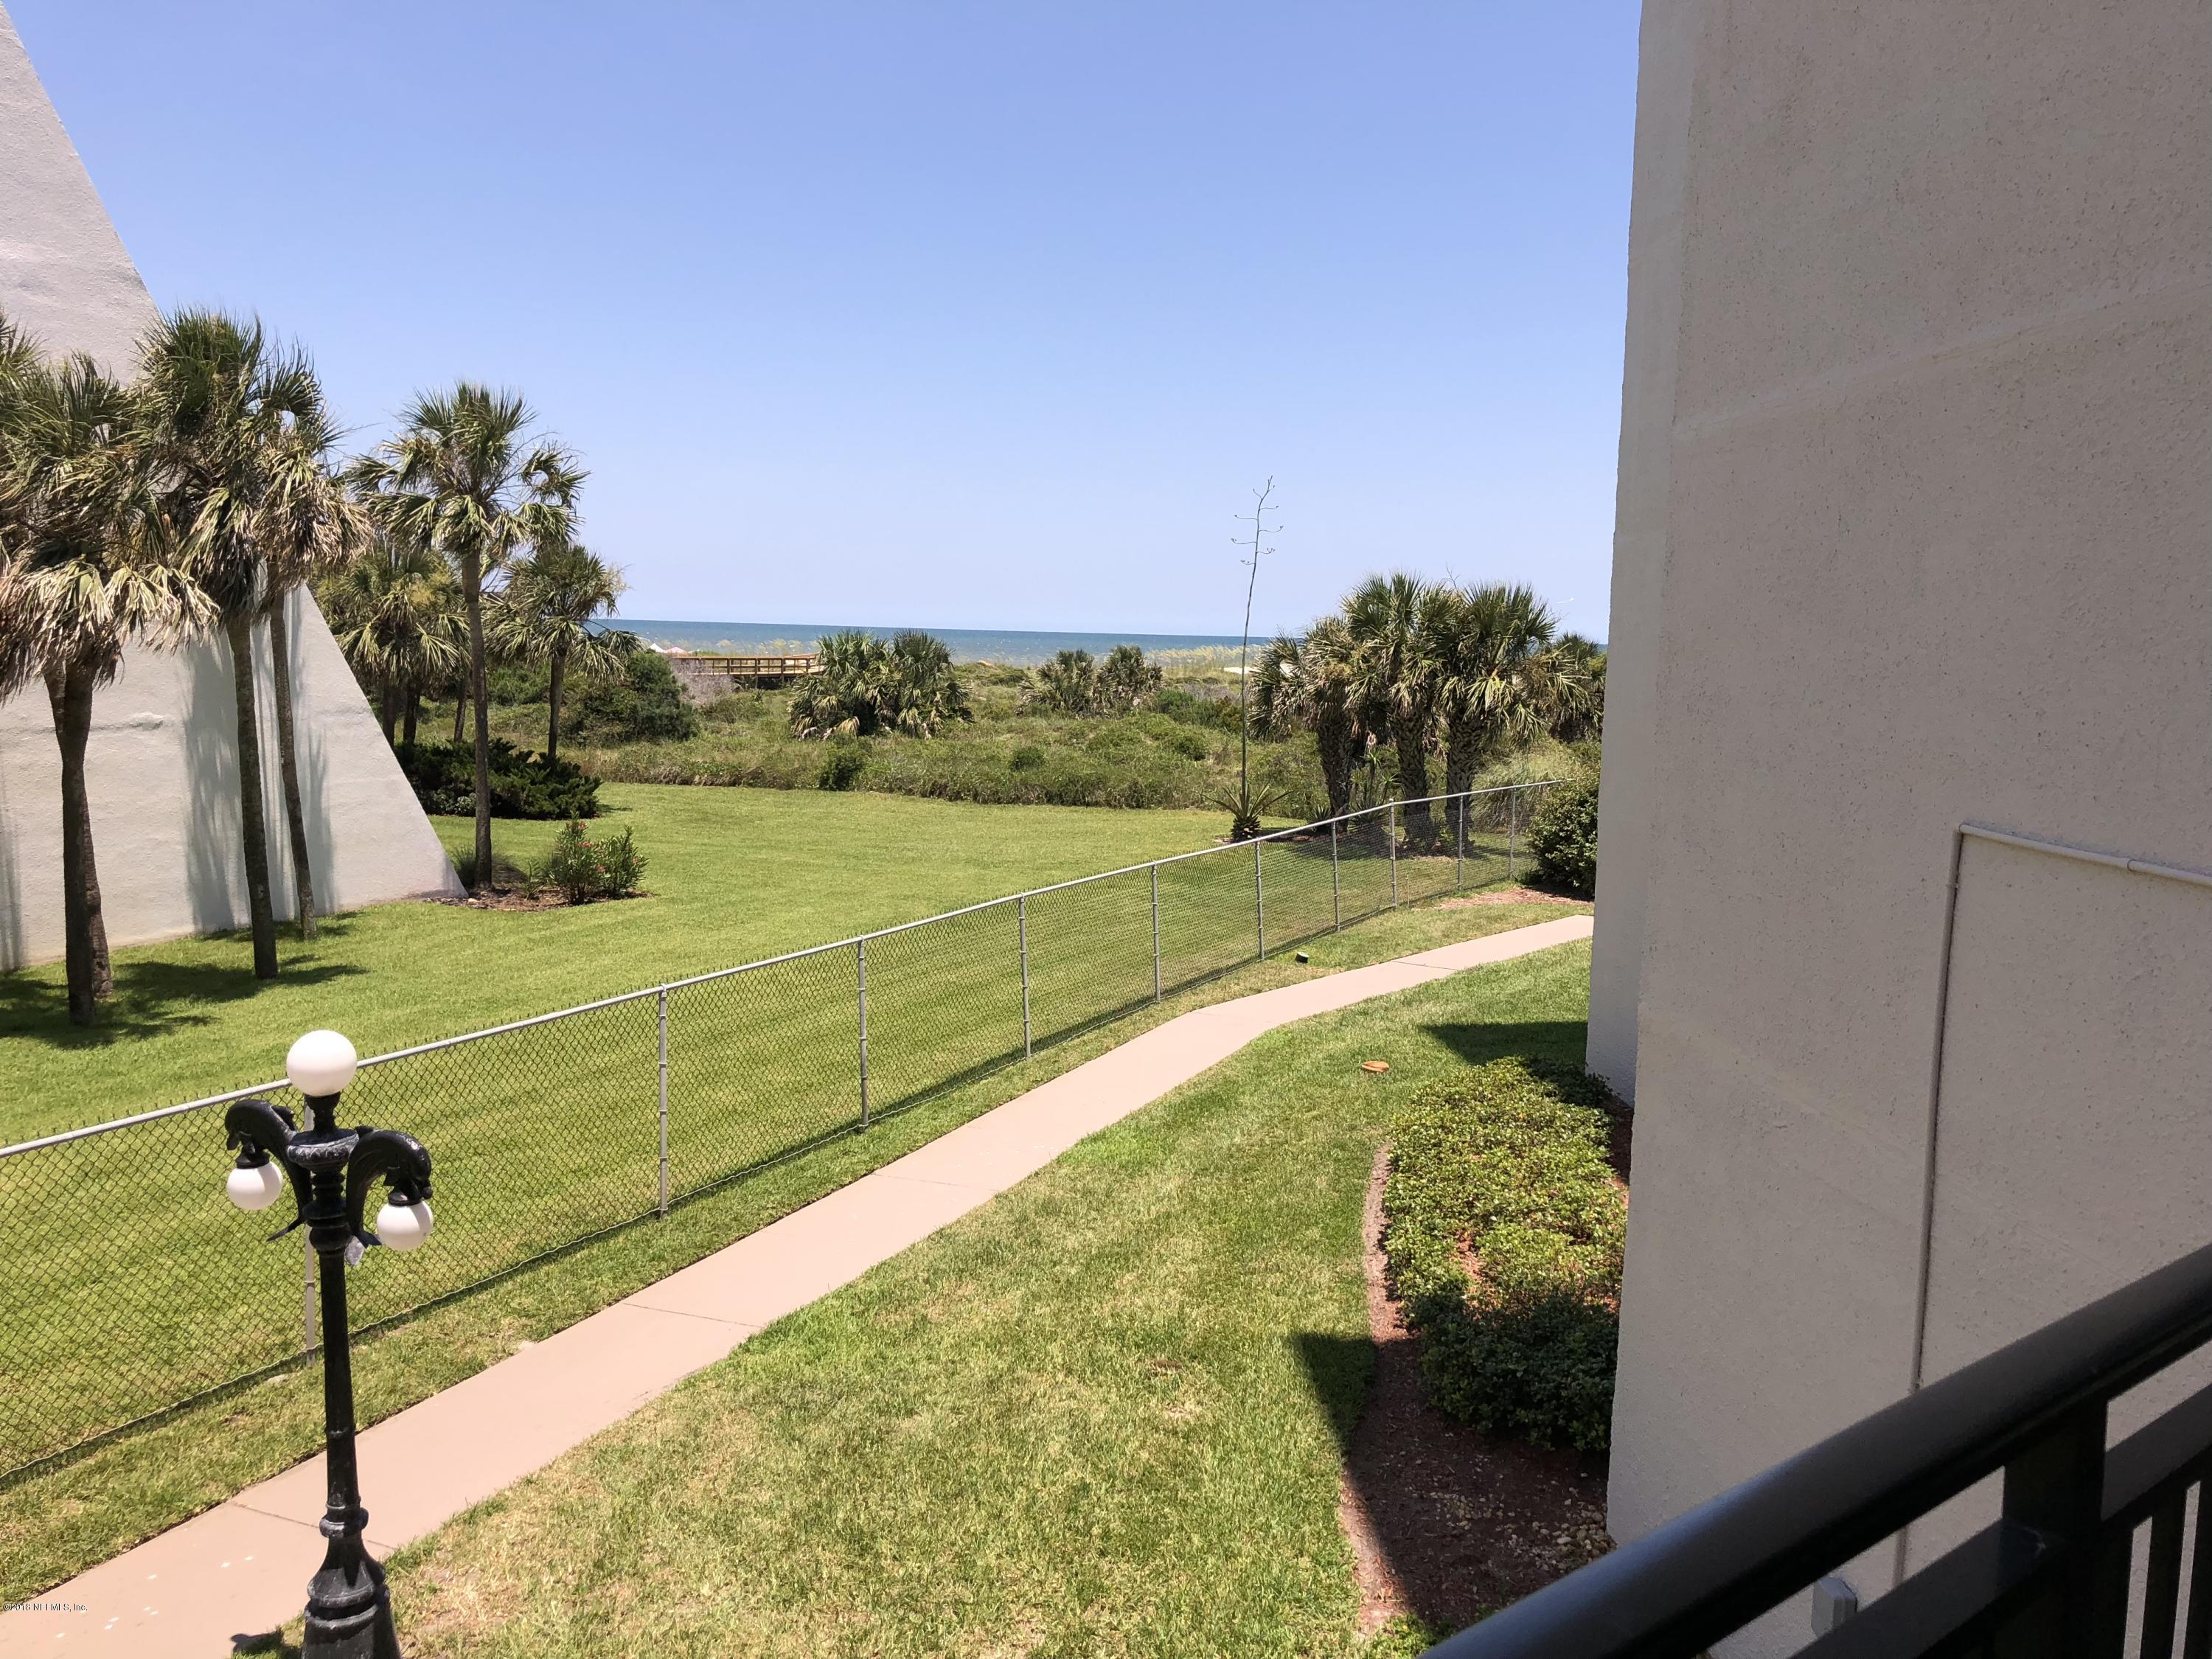 2 DONDANVILLE, ST AUGUSTINE, FLORIDA 32080, 2 Bedrooms Bedrooms, ,2 BathroomsBathrooms,Residential - condos/townhomes,For sale,DONDANVILLE,966678